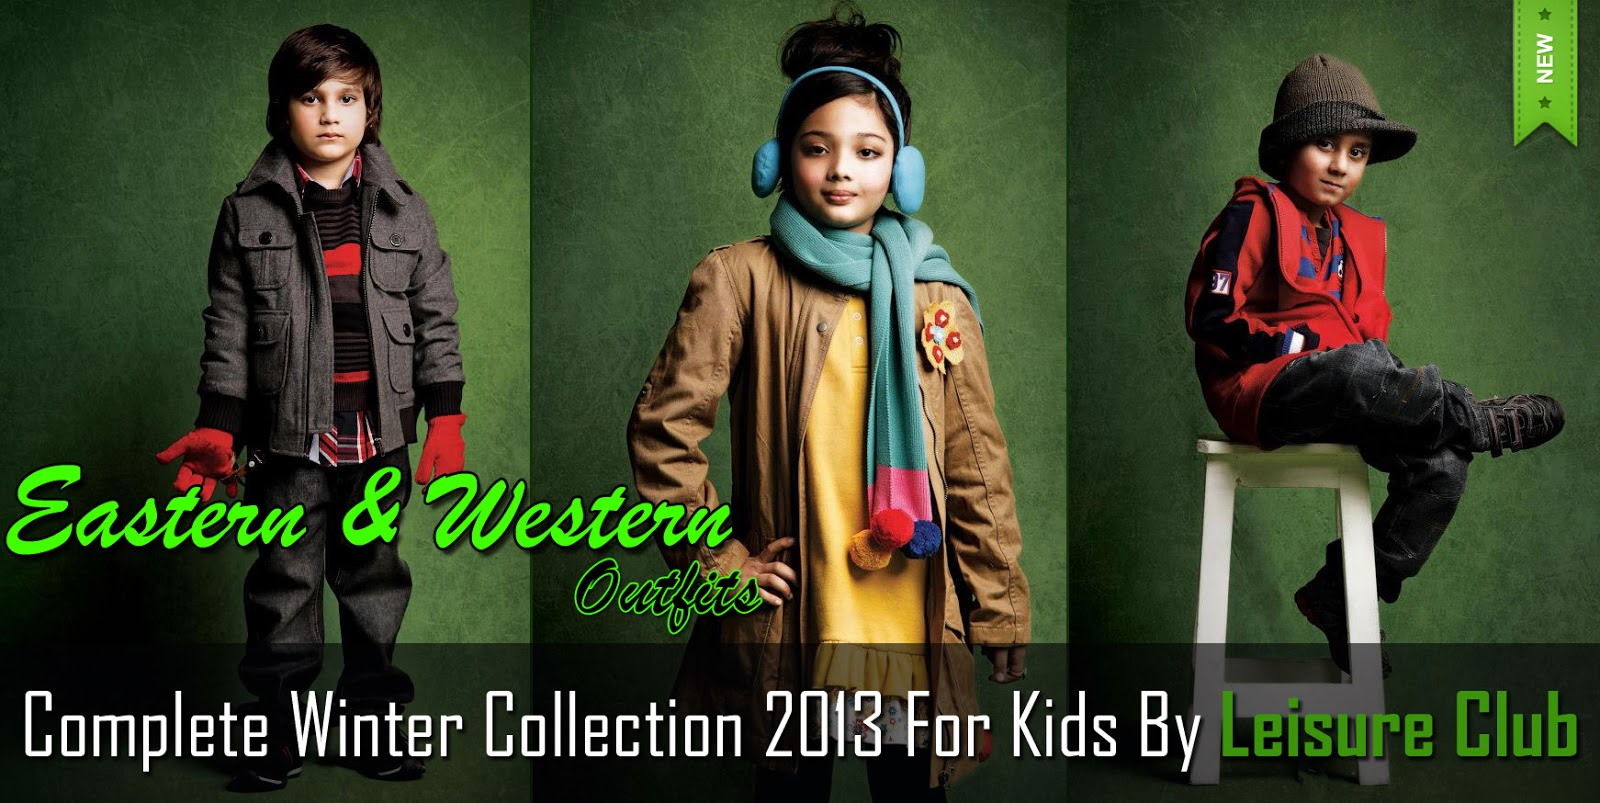 Complete Winter Collection 2013 For Kids By Leisure Club ...